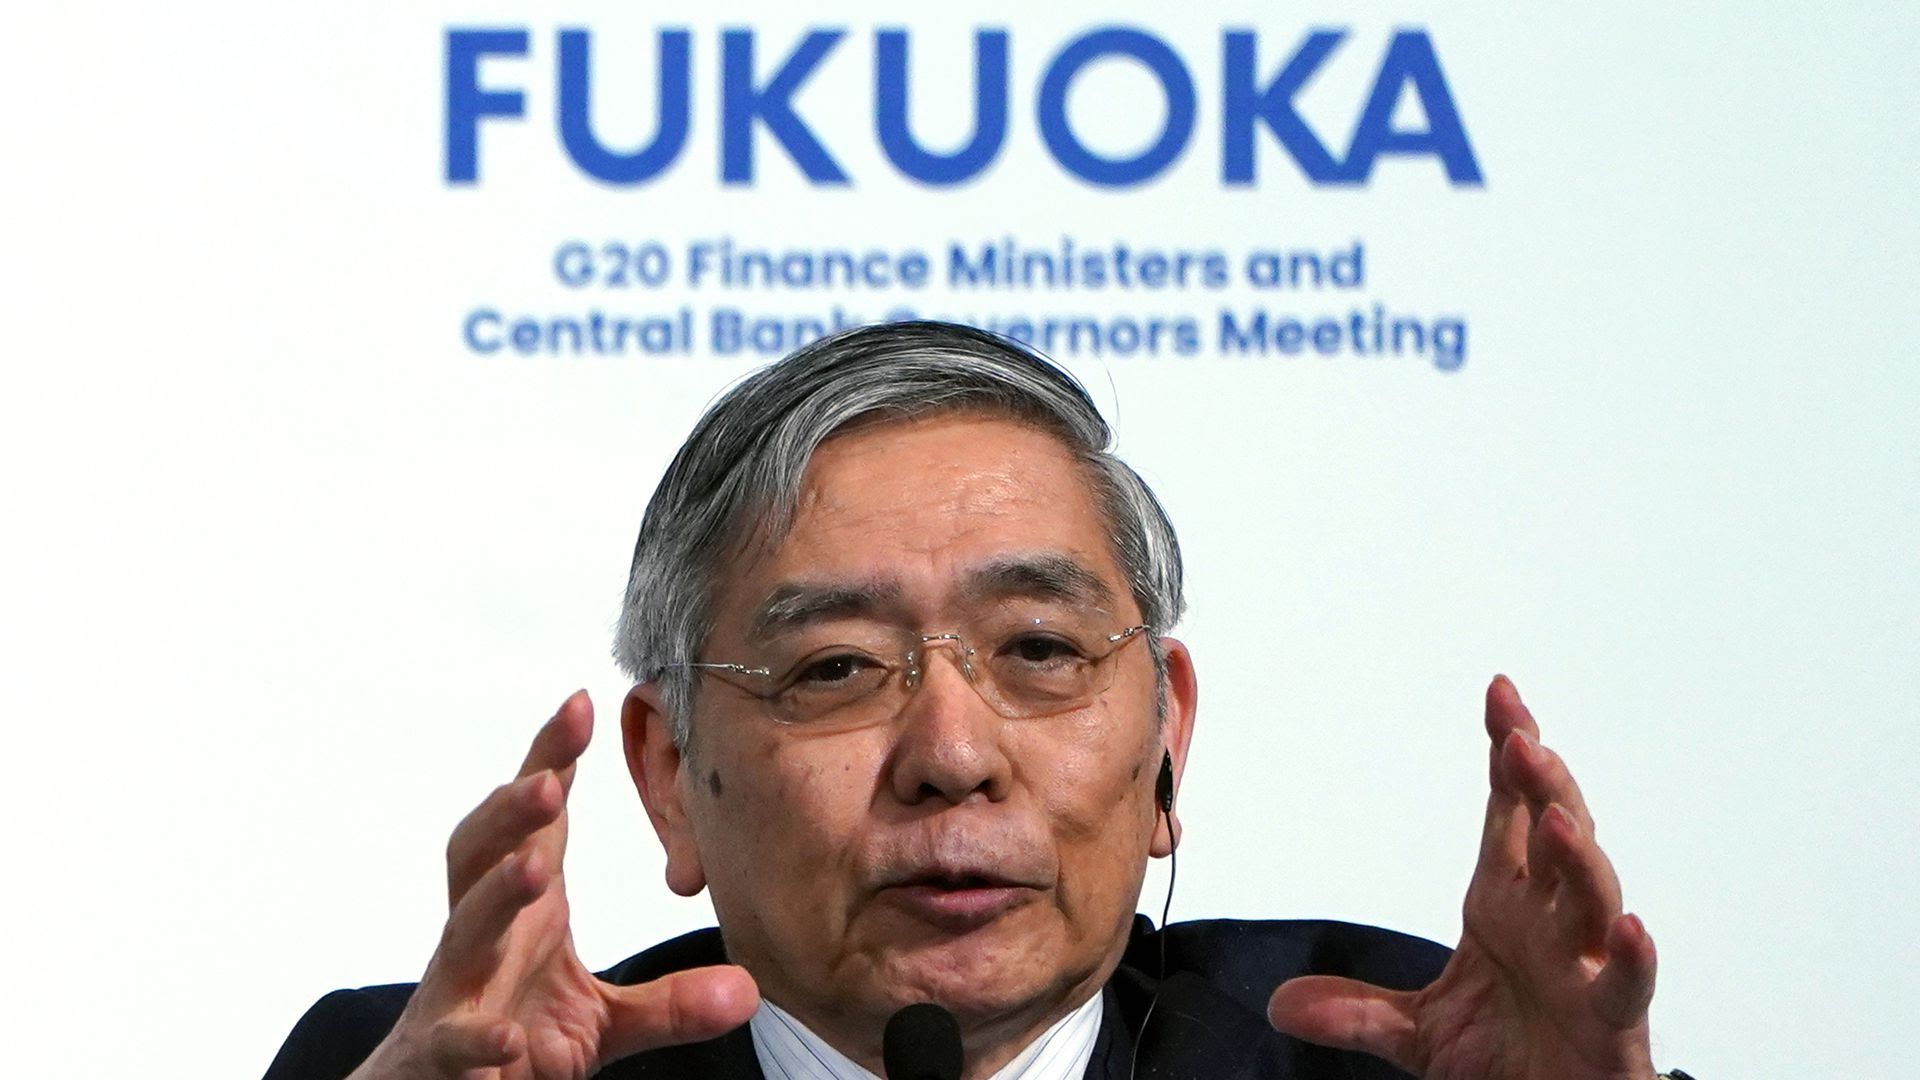 Bank of Japan governor Haruhiko Kuroda at the G20 finance ministers and central bank governors meeting in Japan. Photo: Eugene Hoshiko/AFP/Getty Images